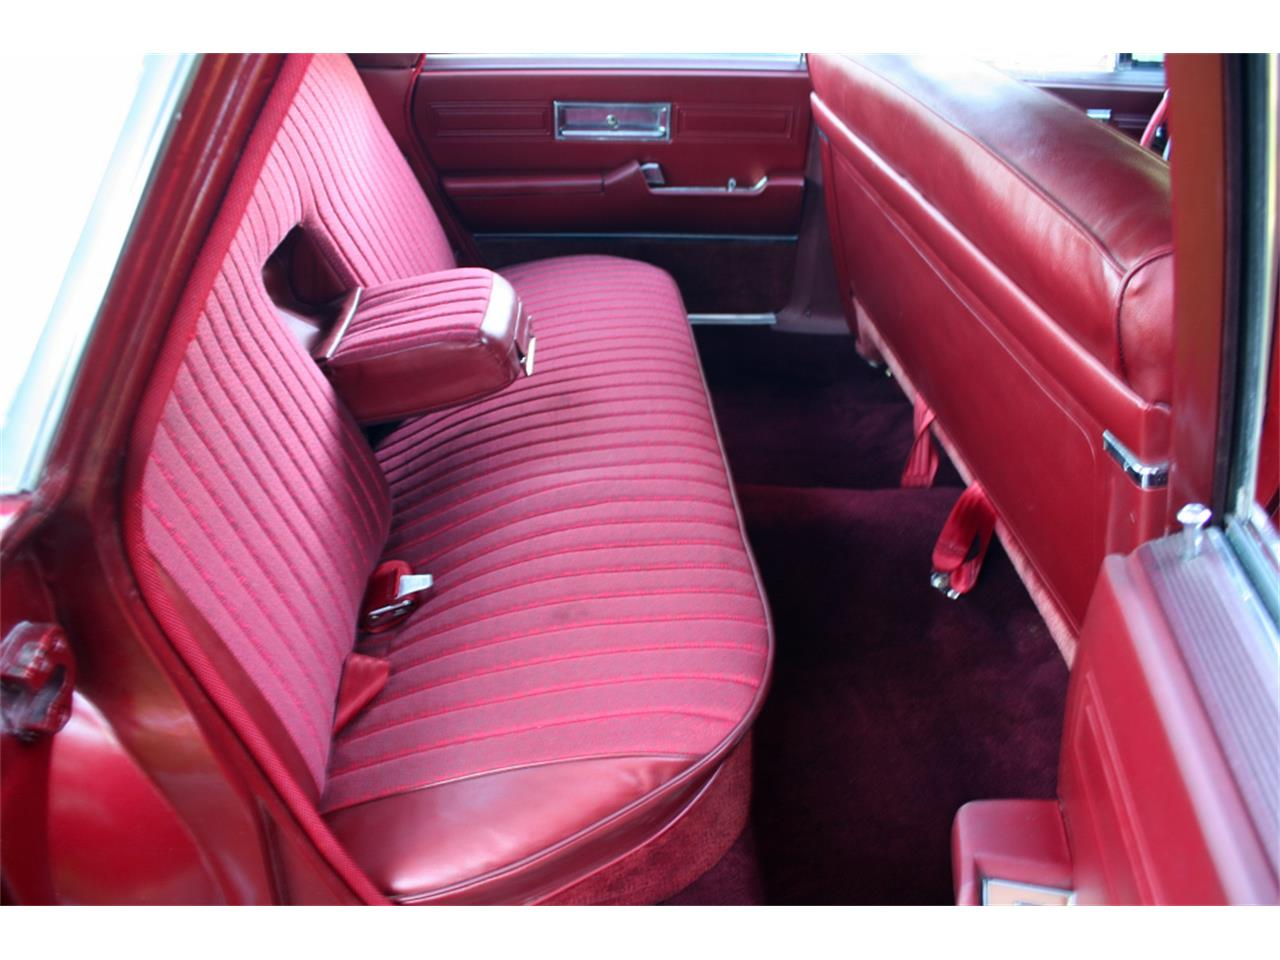 1968 Chrysler Imperial for sale in Lakeland, FL – photo 46